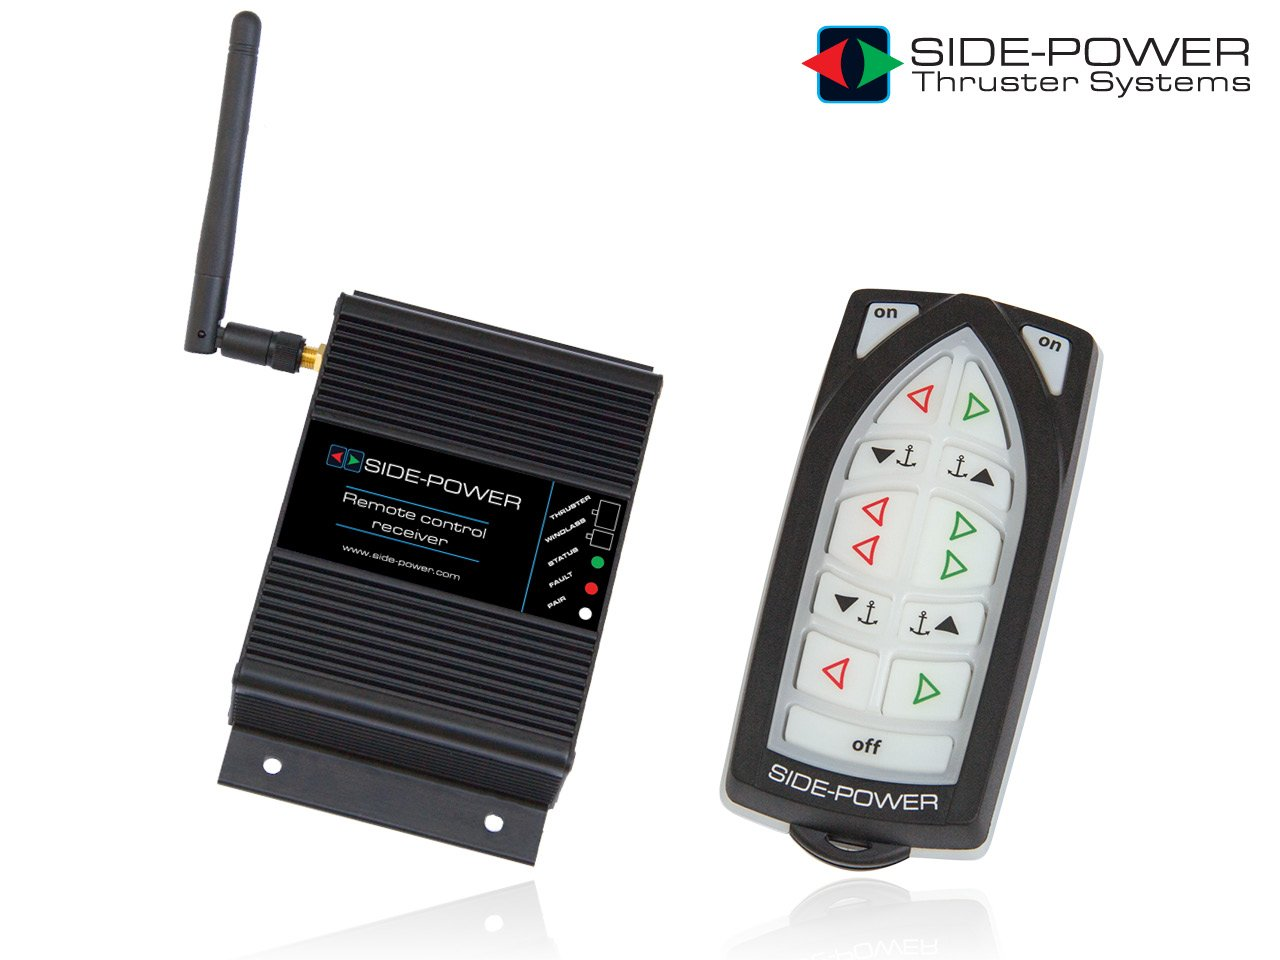 Side-Power Remote Control Kit